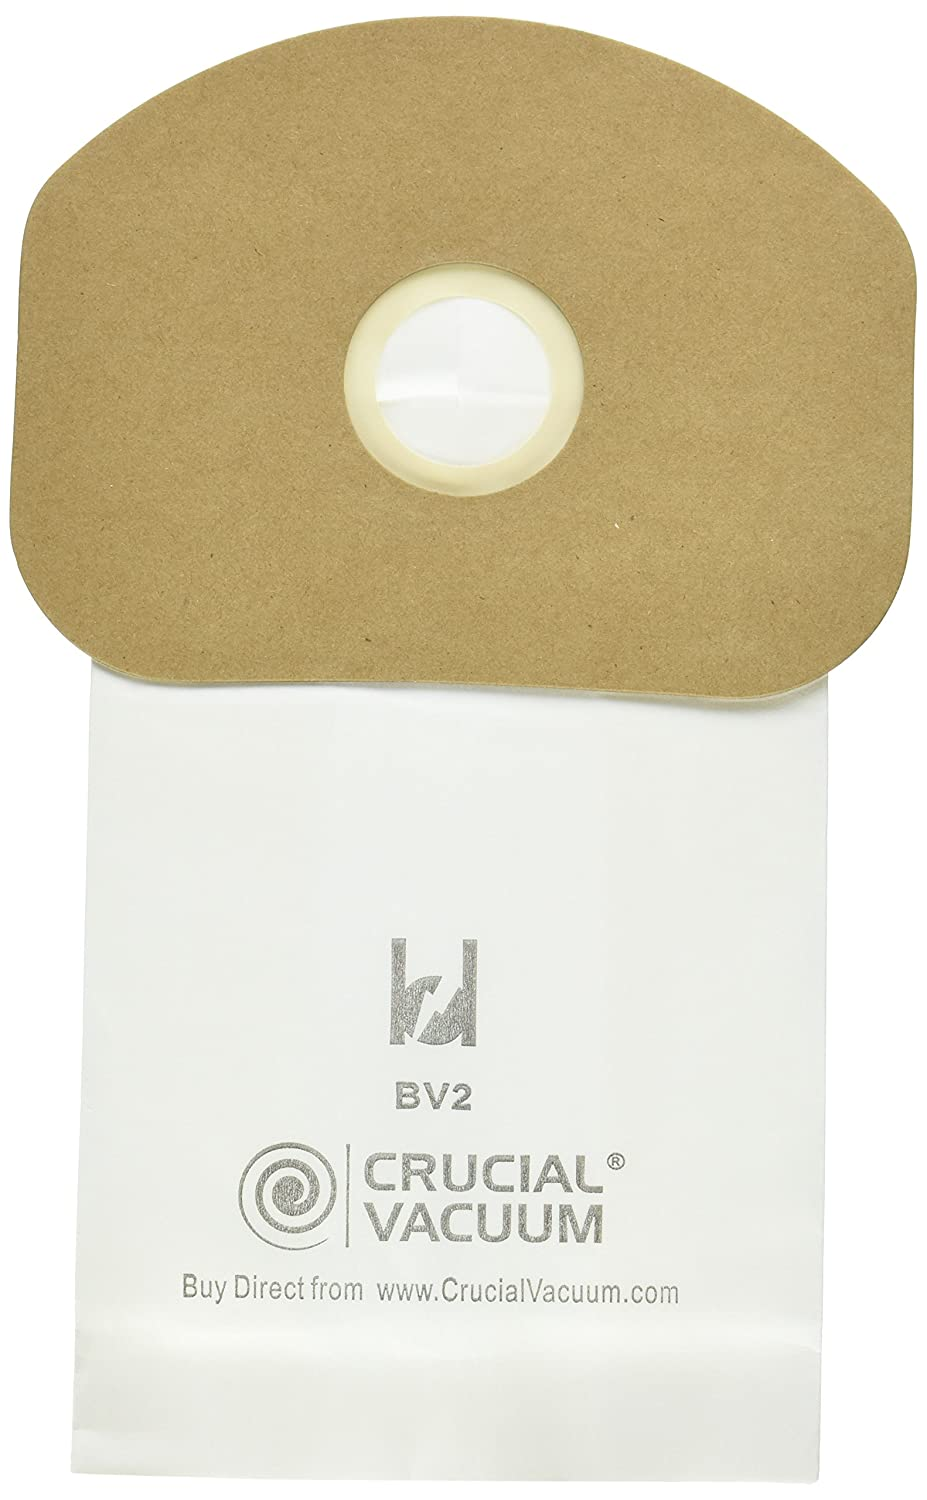 Think Crucial 10 Replacements for Eureka BV-2 Bags, Fit Sanitaire, Backpack, Carpet Pro, Piranha, and Tornado, Compatible with Part 62370